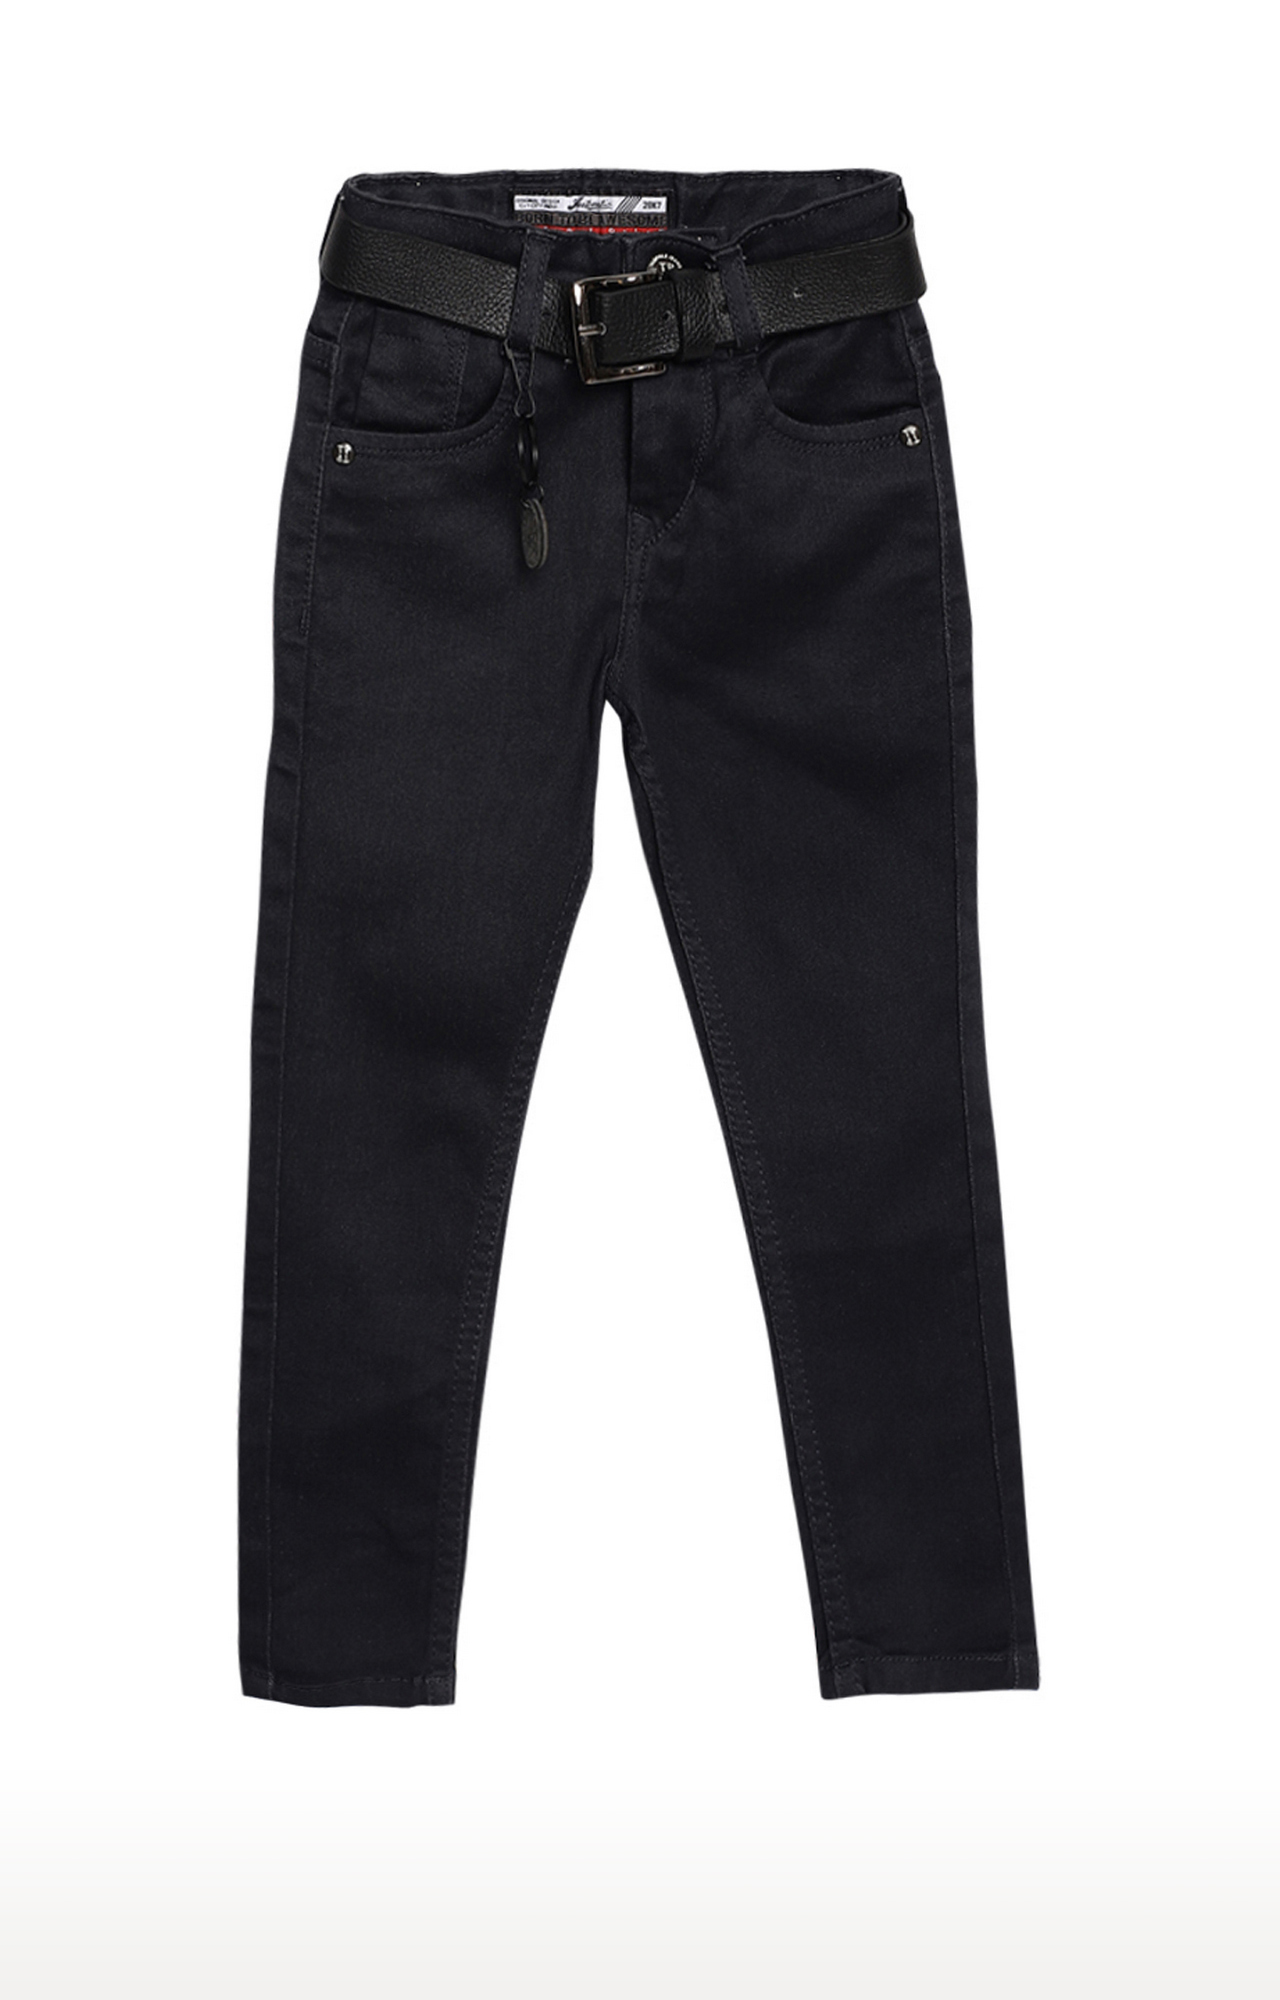 Tadpole | Charcoal Solid Regular-Fit Jeans